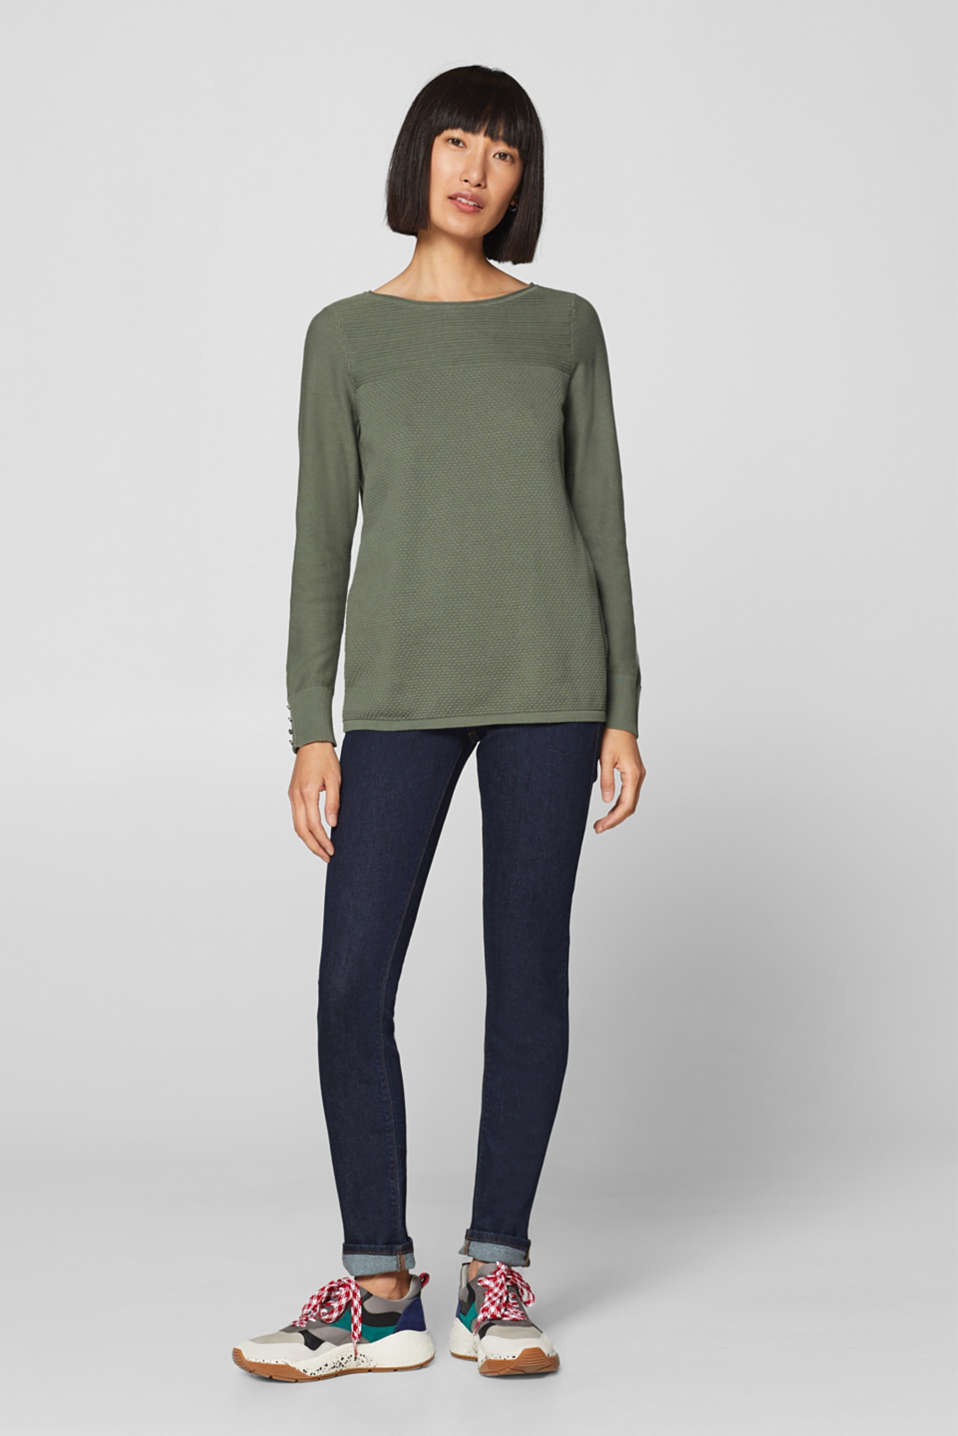 Jumper with a mix of textures, 100% cotton, KHAKI GREEN, detail image number 1